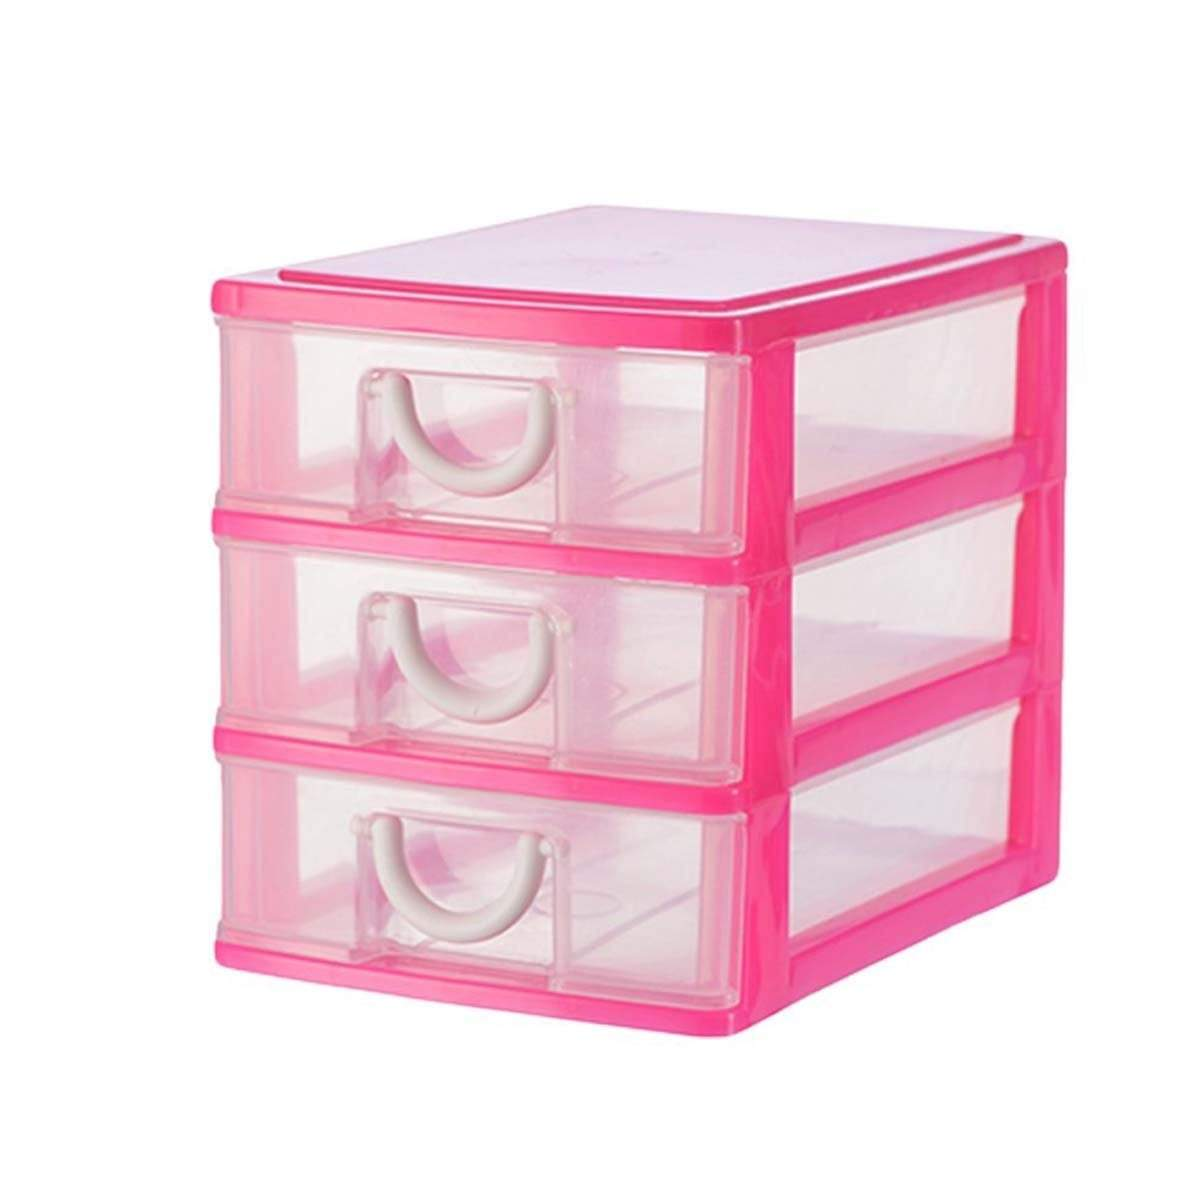 6130 Mini Drawer A4 - 3 Tier